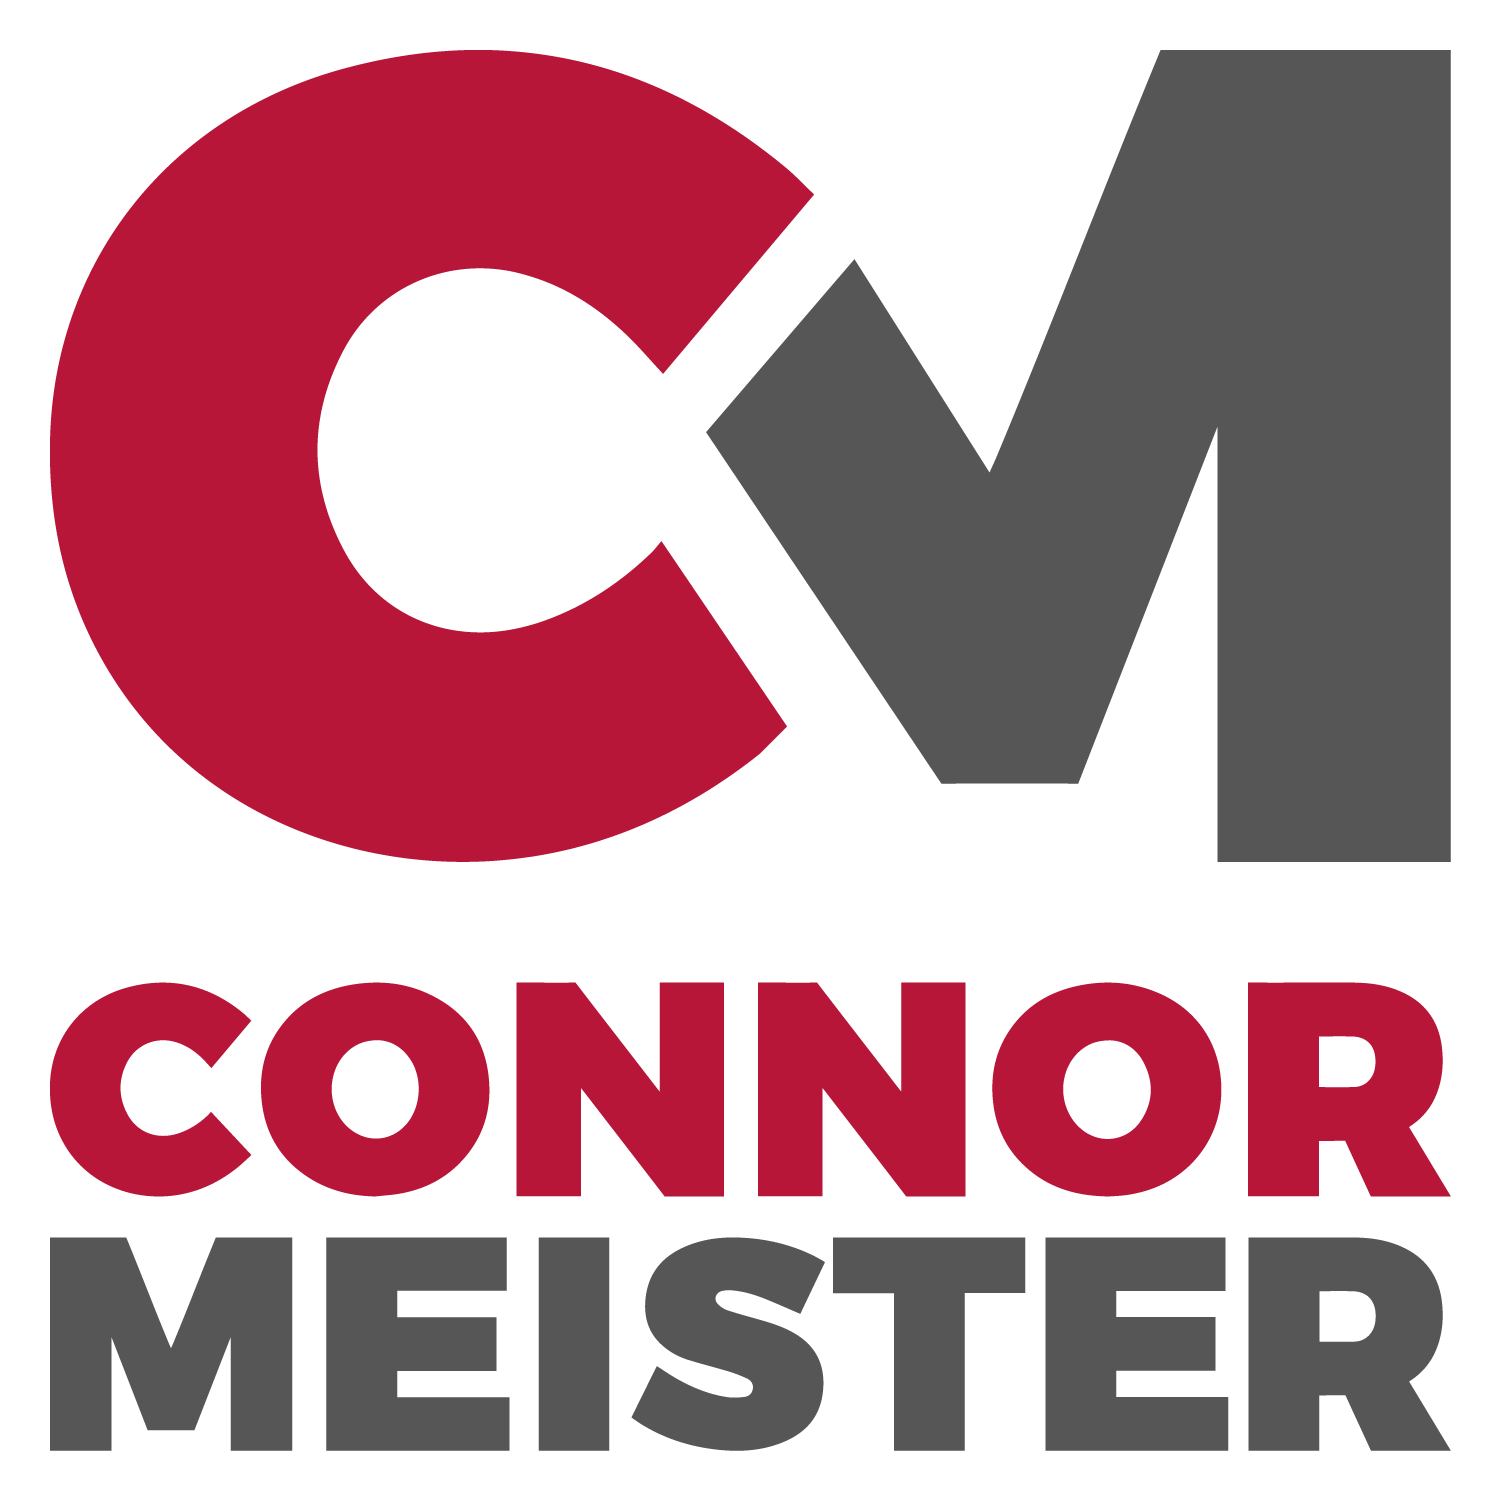 CONNOR MEISTER